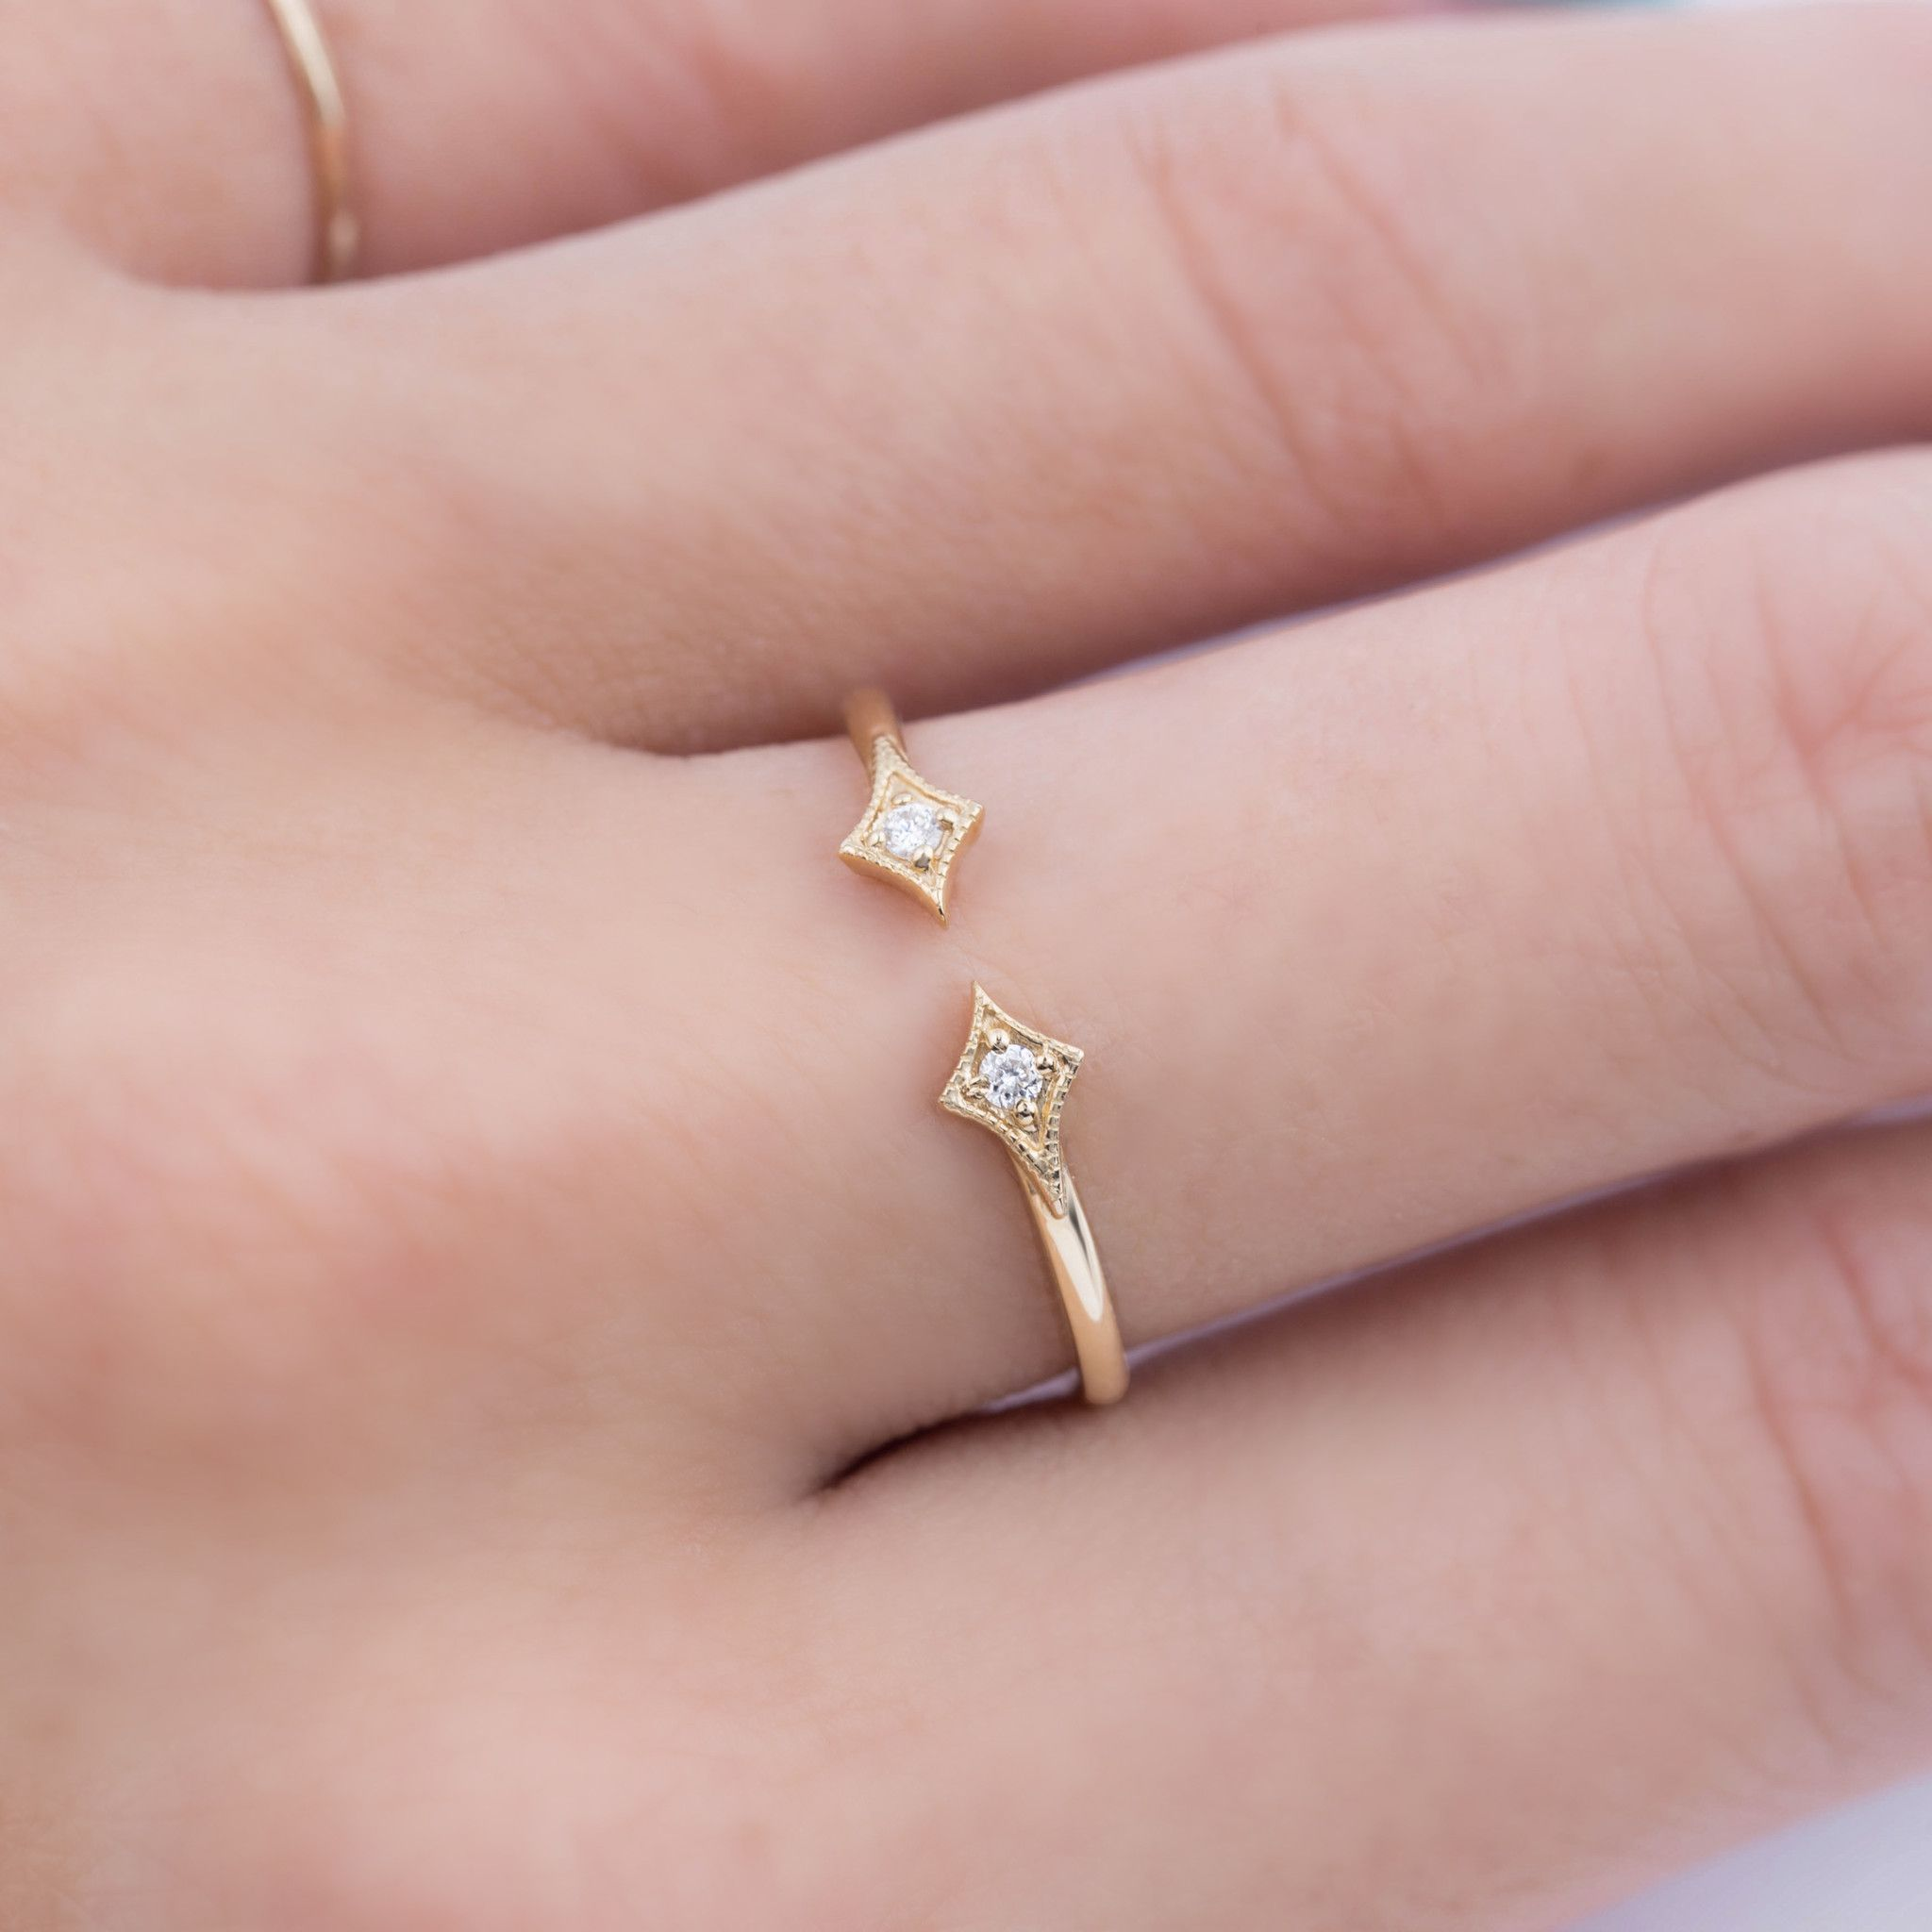 Double Star Diamond Ring | Pinterest | Star ring